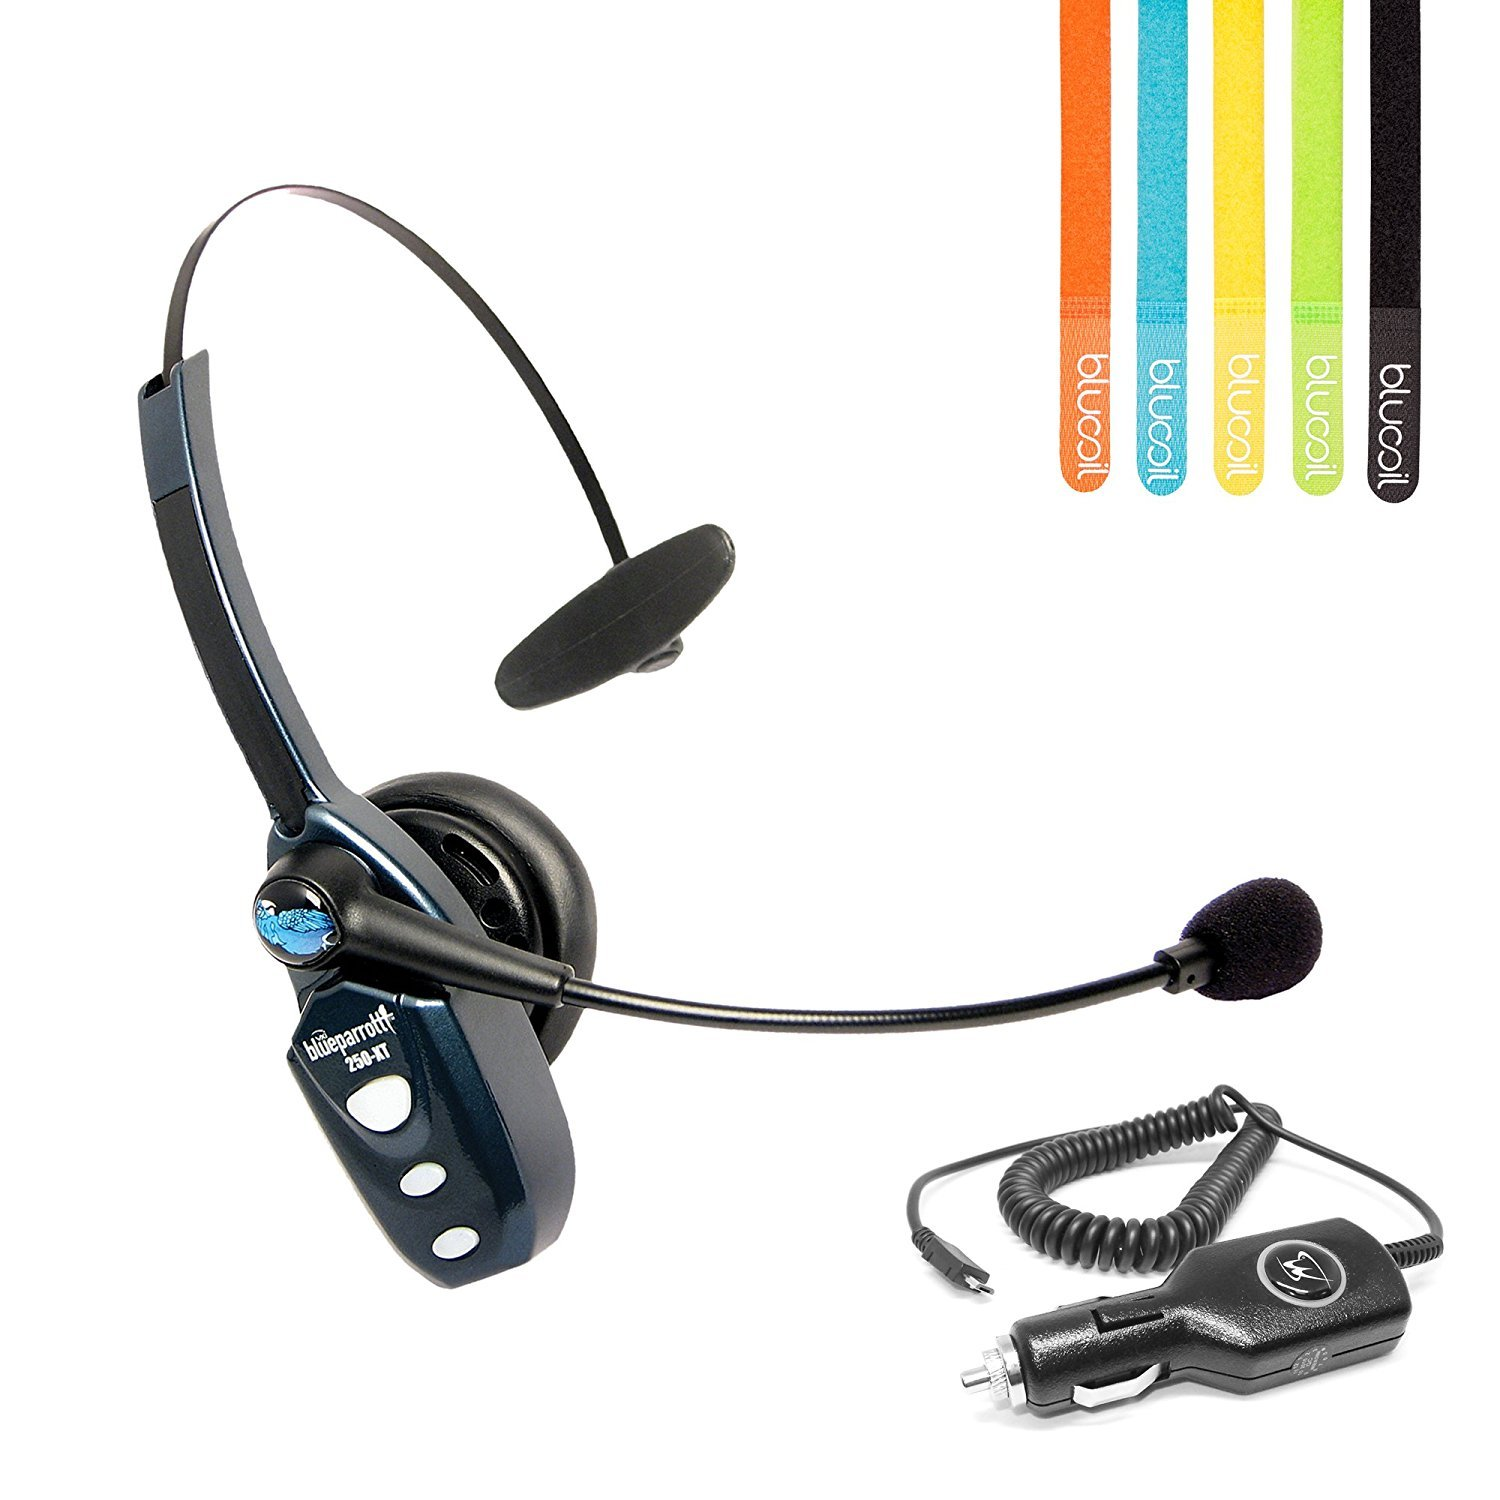 692837656aa 30%OFF VXi BlueParrott B250-XTS Bluetooth Headset with AC Power Supply -  INCLUDES